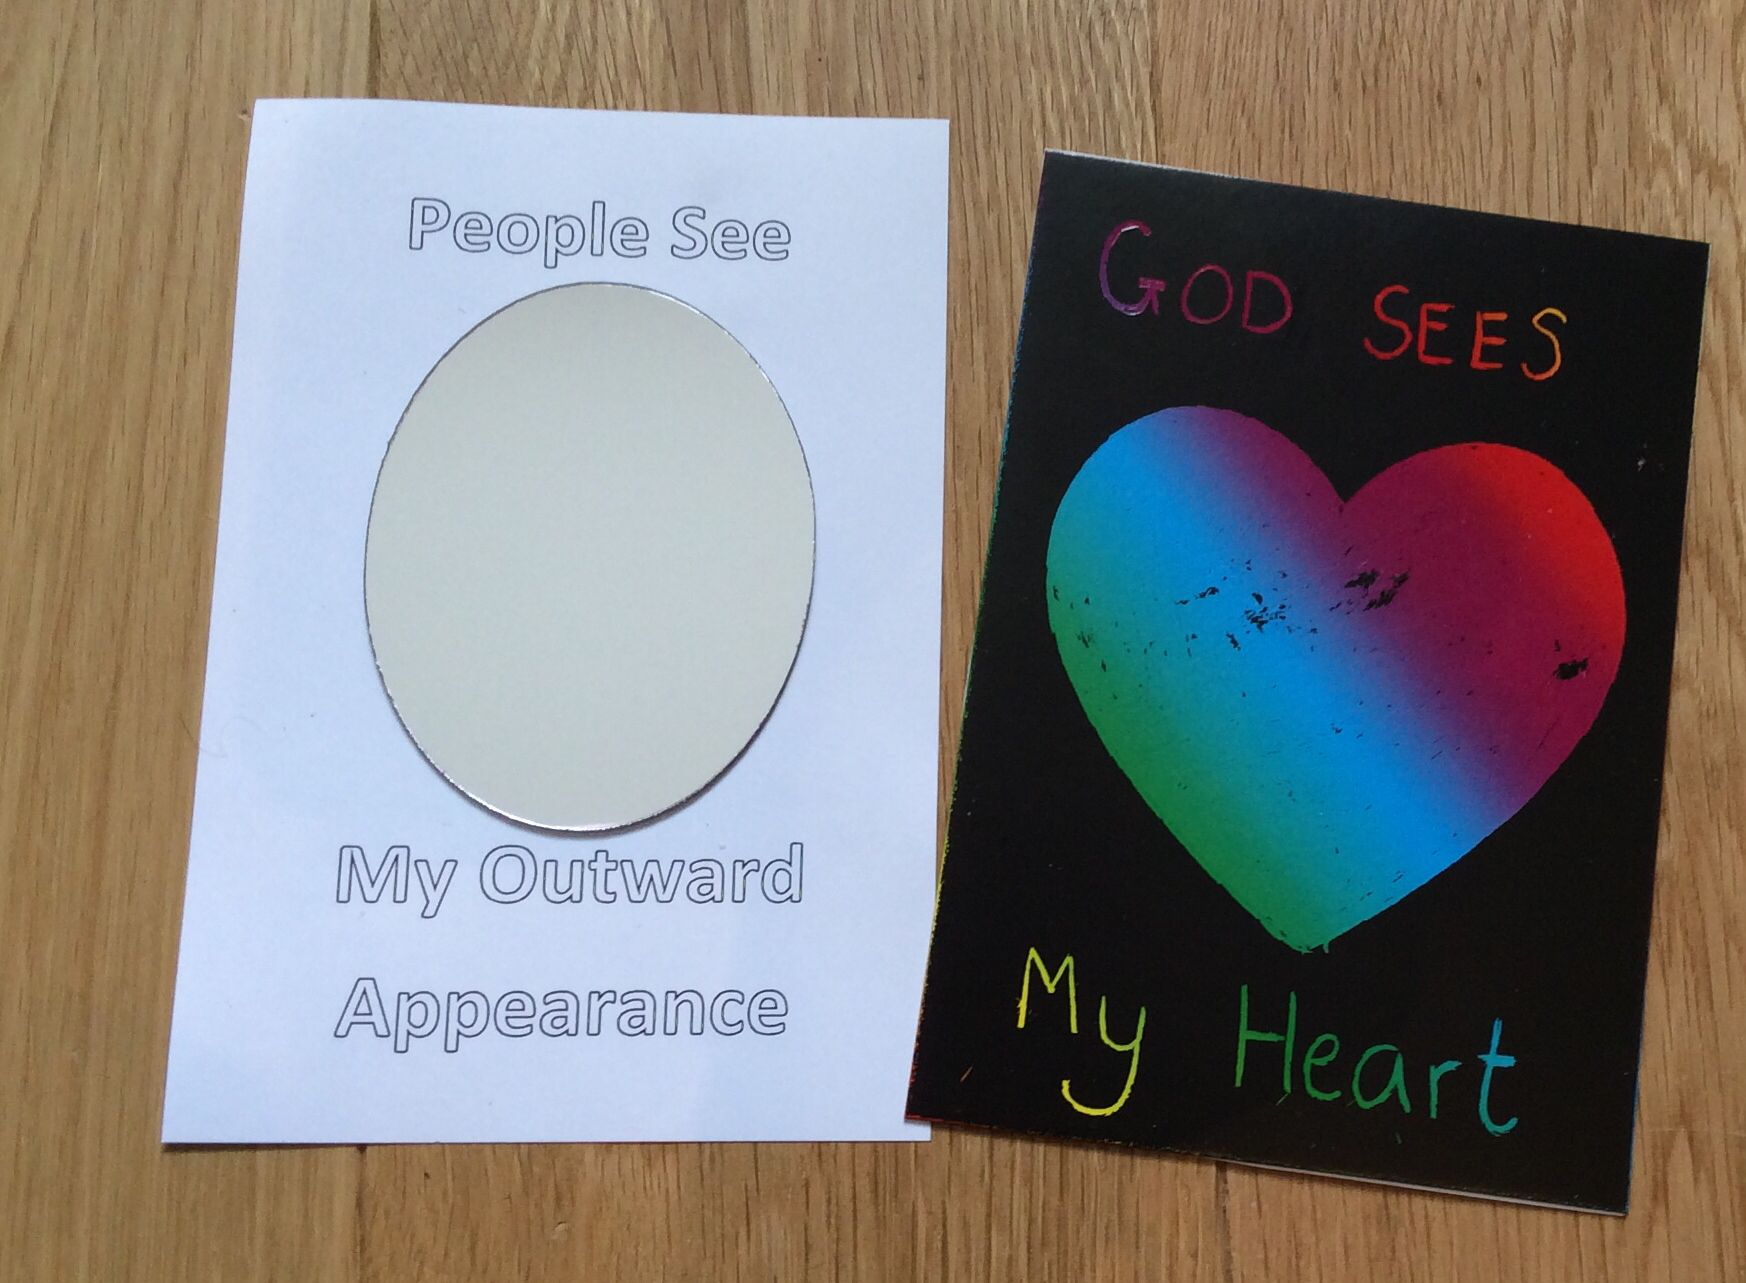 Two Sided Cards Craft To Go With 1 Samuel 16